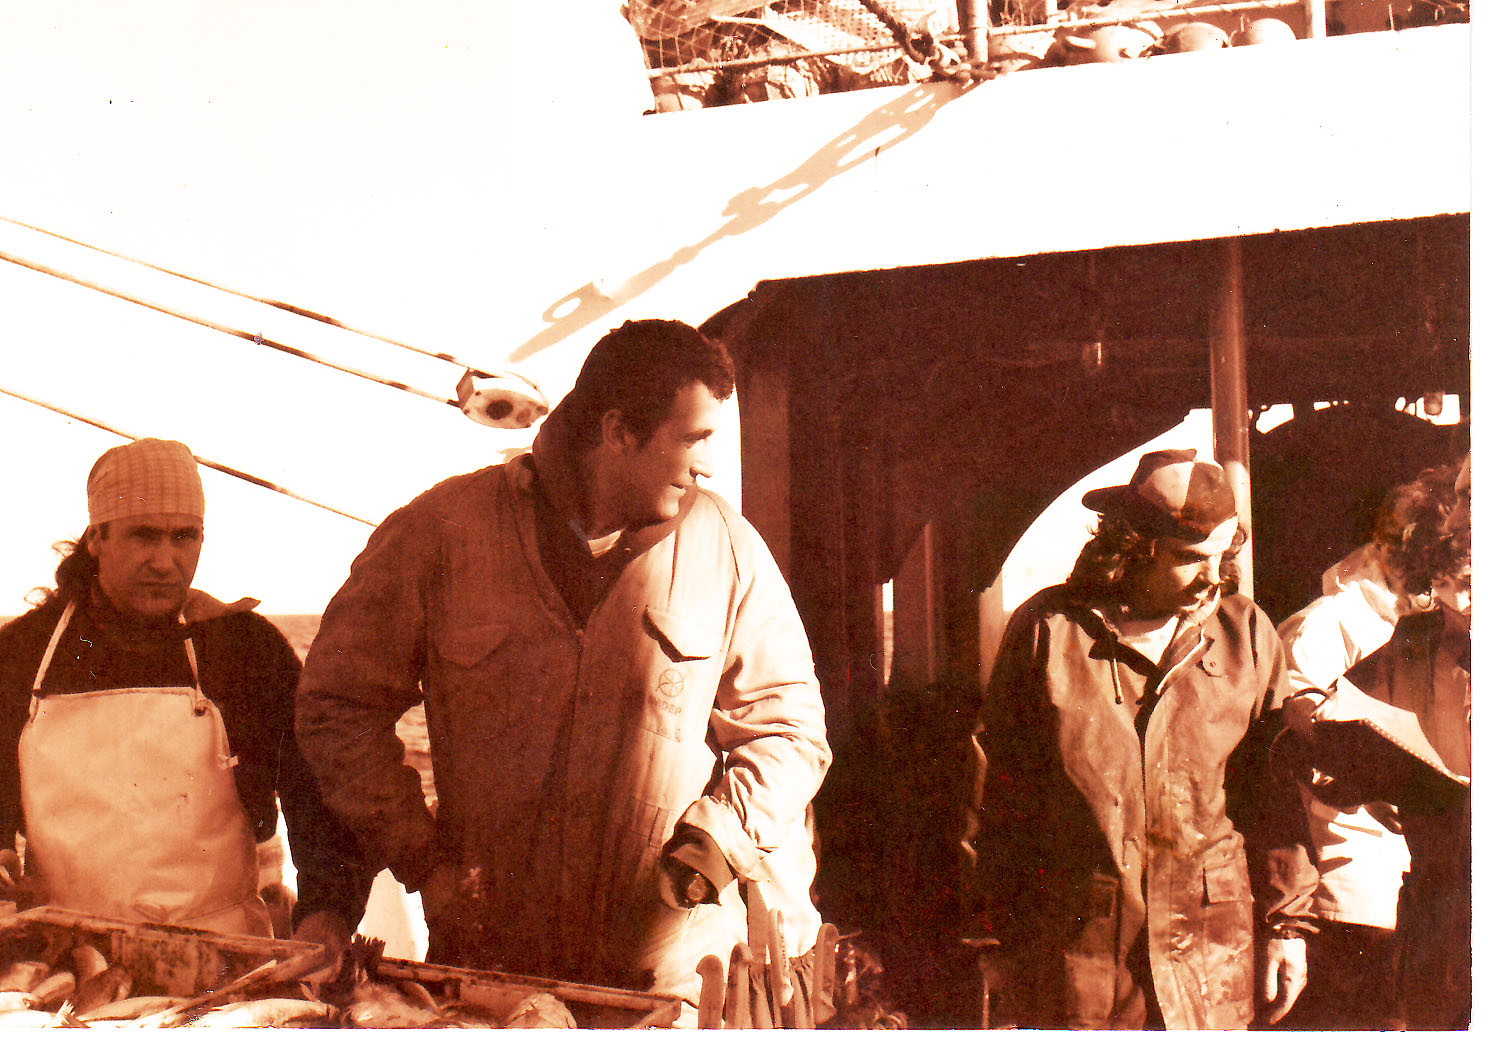 With 2 of my best friends on the deck of a trawler (South Atlantic early 90s)